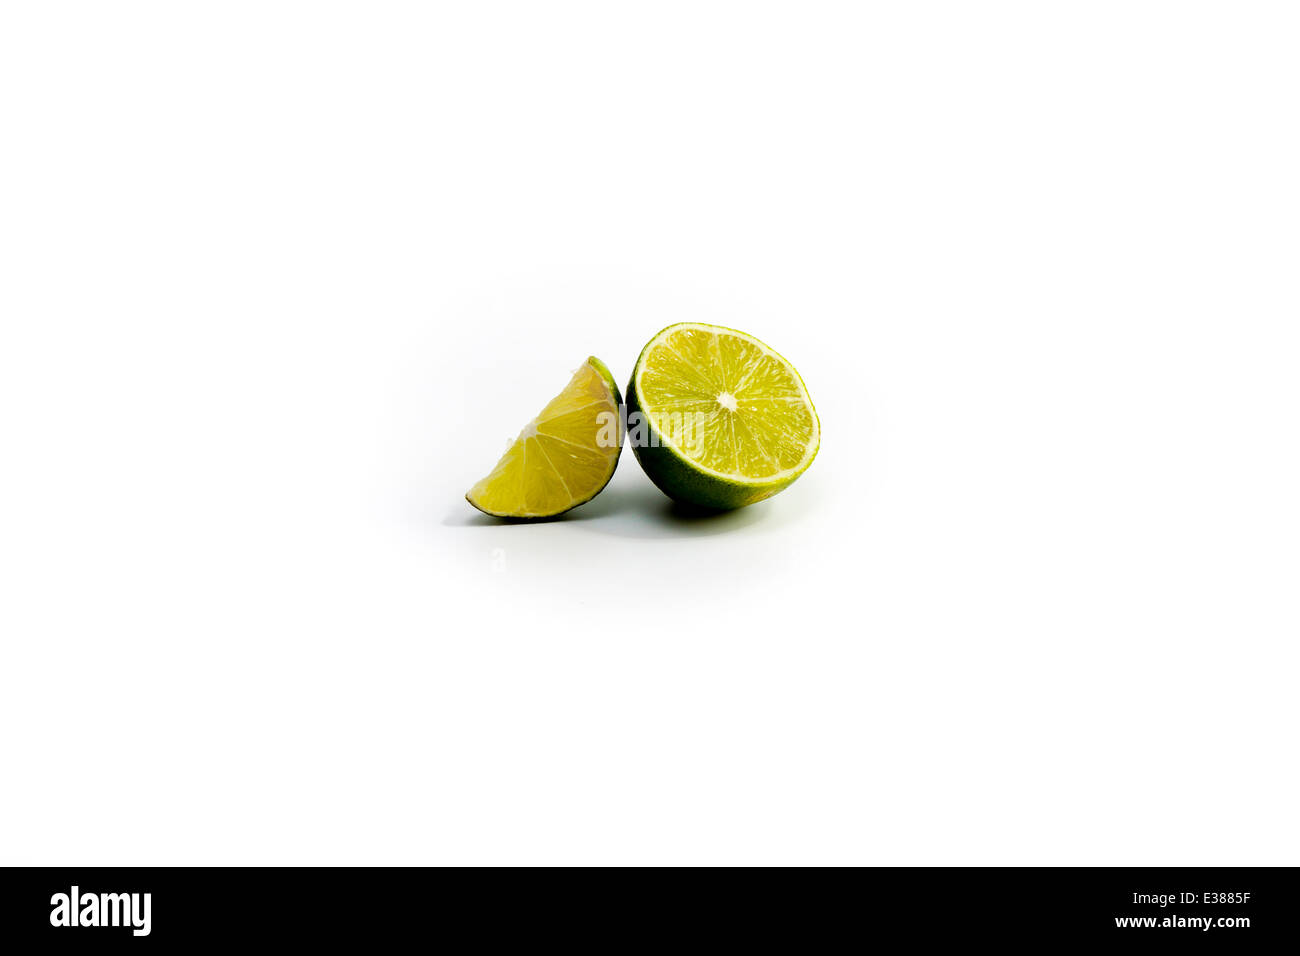 Lime half and lime slice in field of white. Optional cutout. - Stock Image